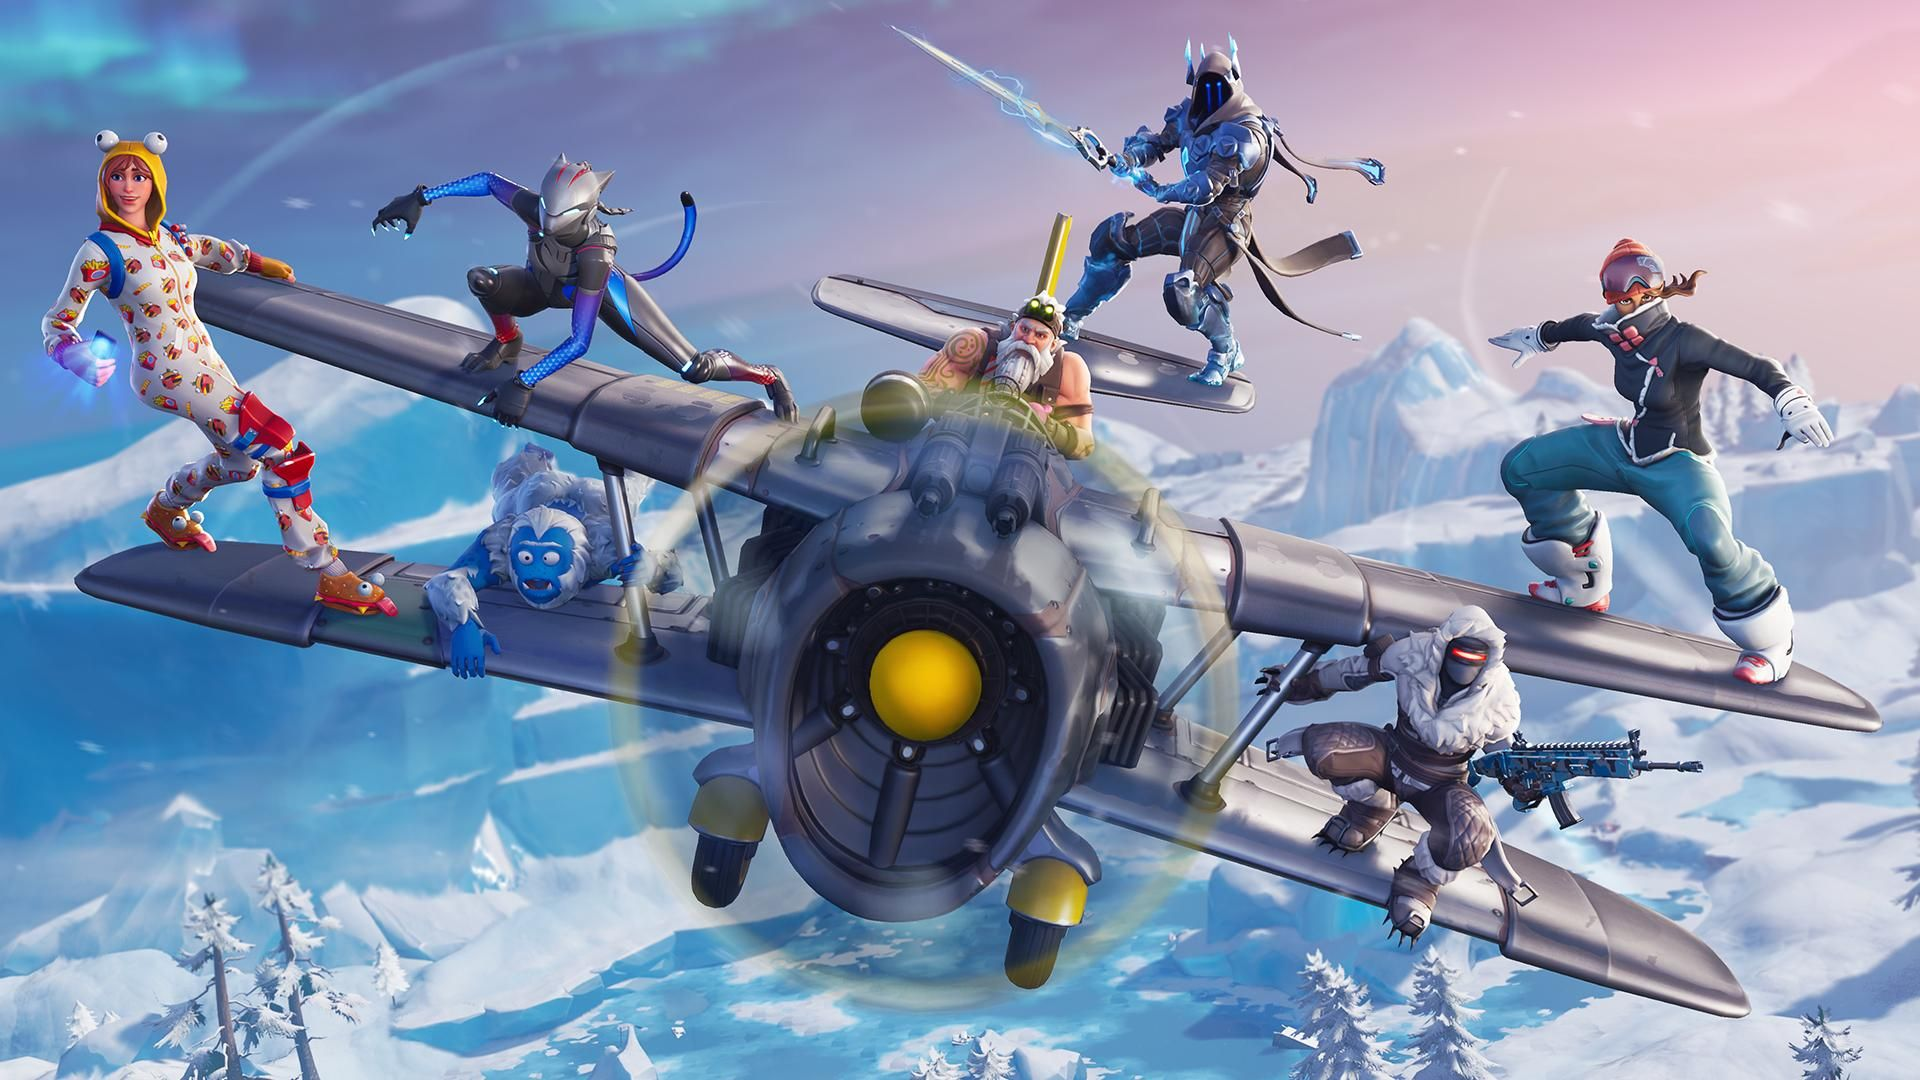 Fortnite Season 7 Plane Attack Wallpaper 1920x1080 Need Trendy Iphone7 Iphone7plus Case Check Out Https Ift Tt 2itgto5 Fortnite Epic Games Season 7